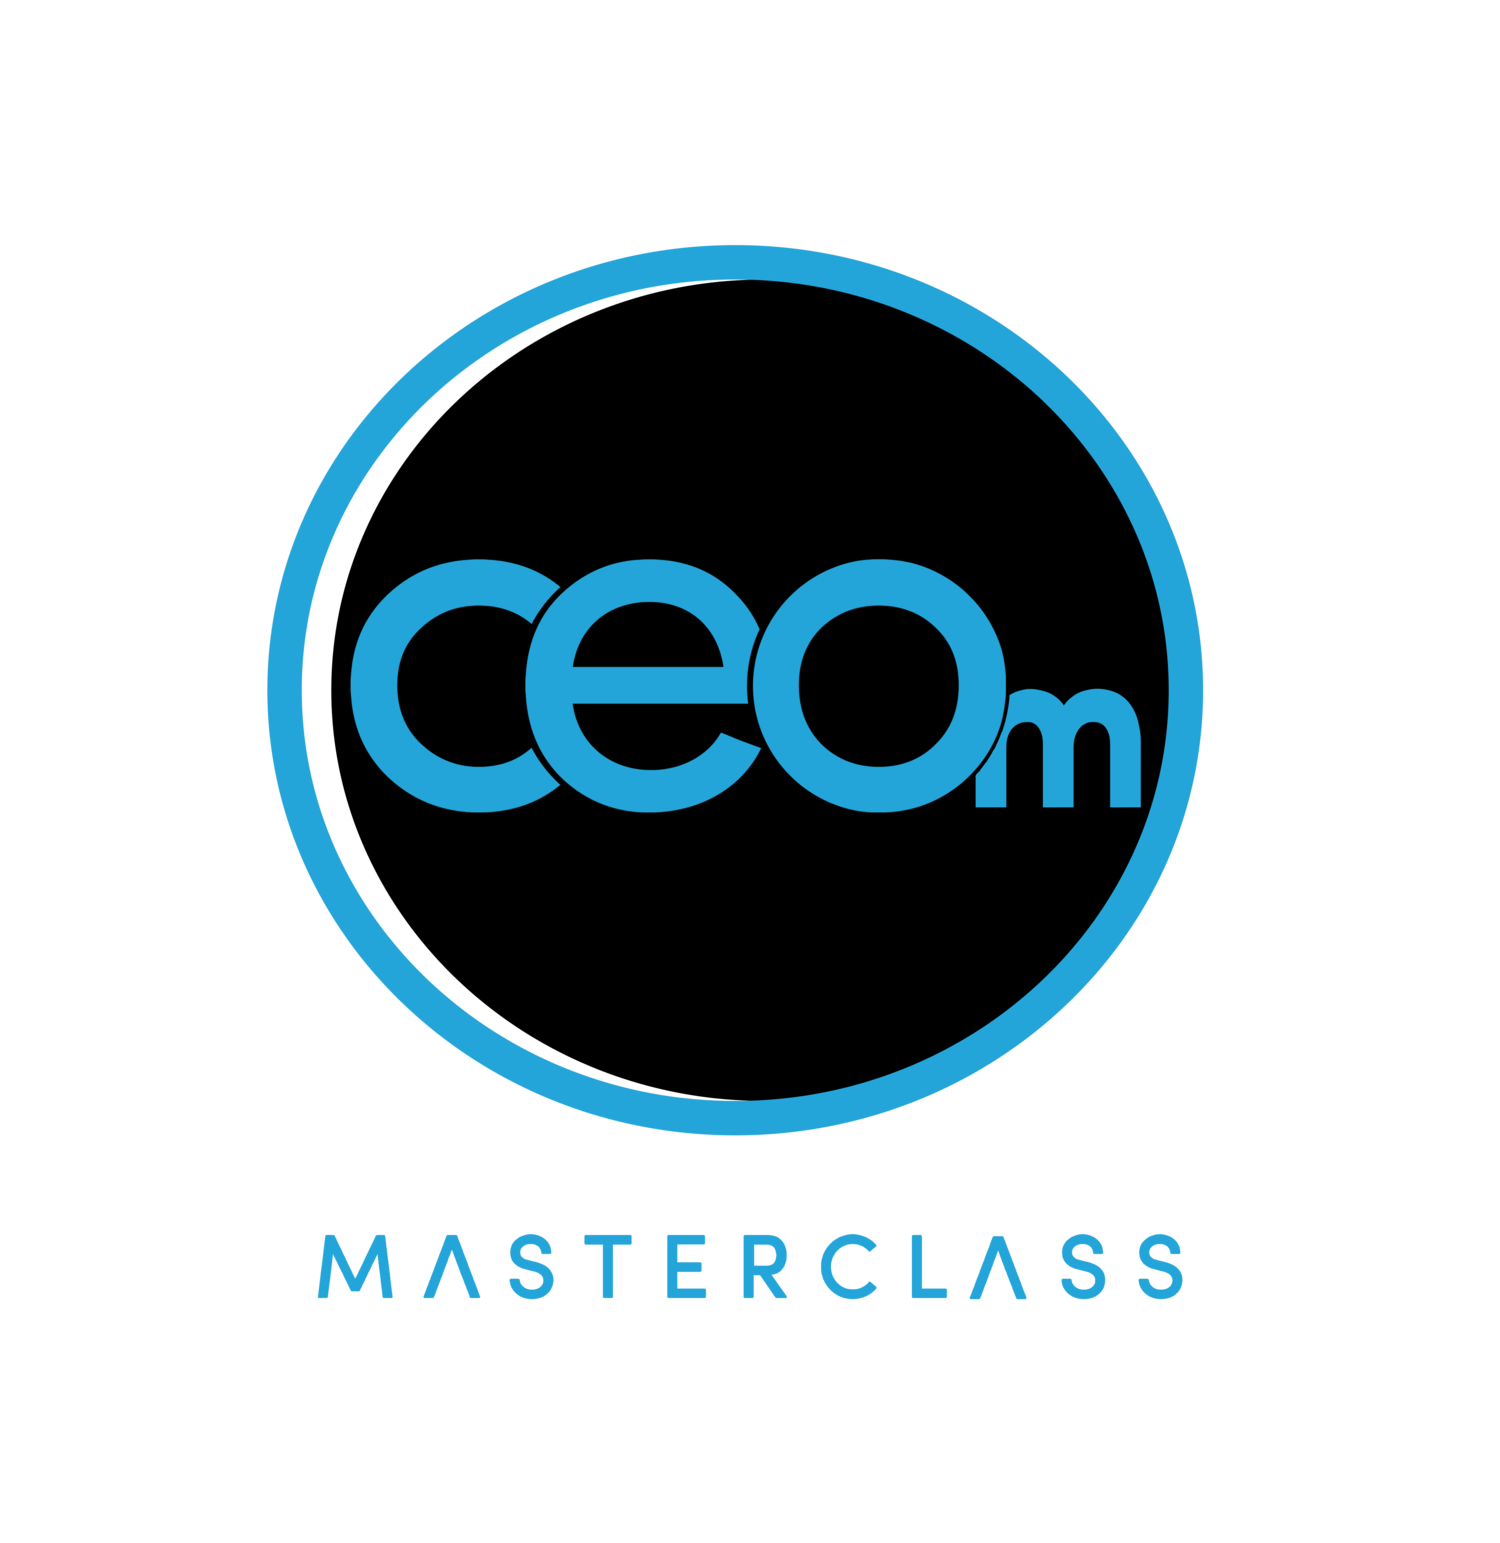 CEO Masterclass - The First Ever CEO Masterclass